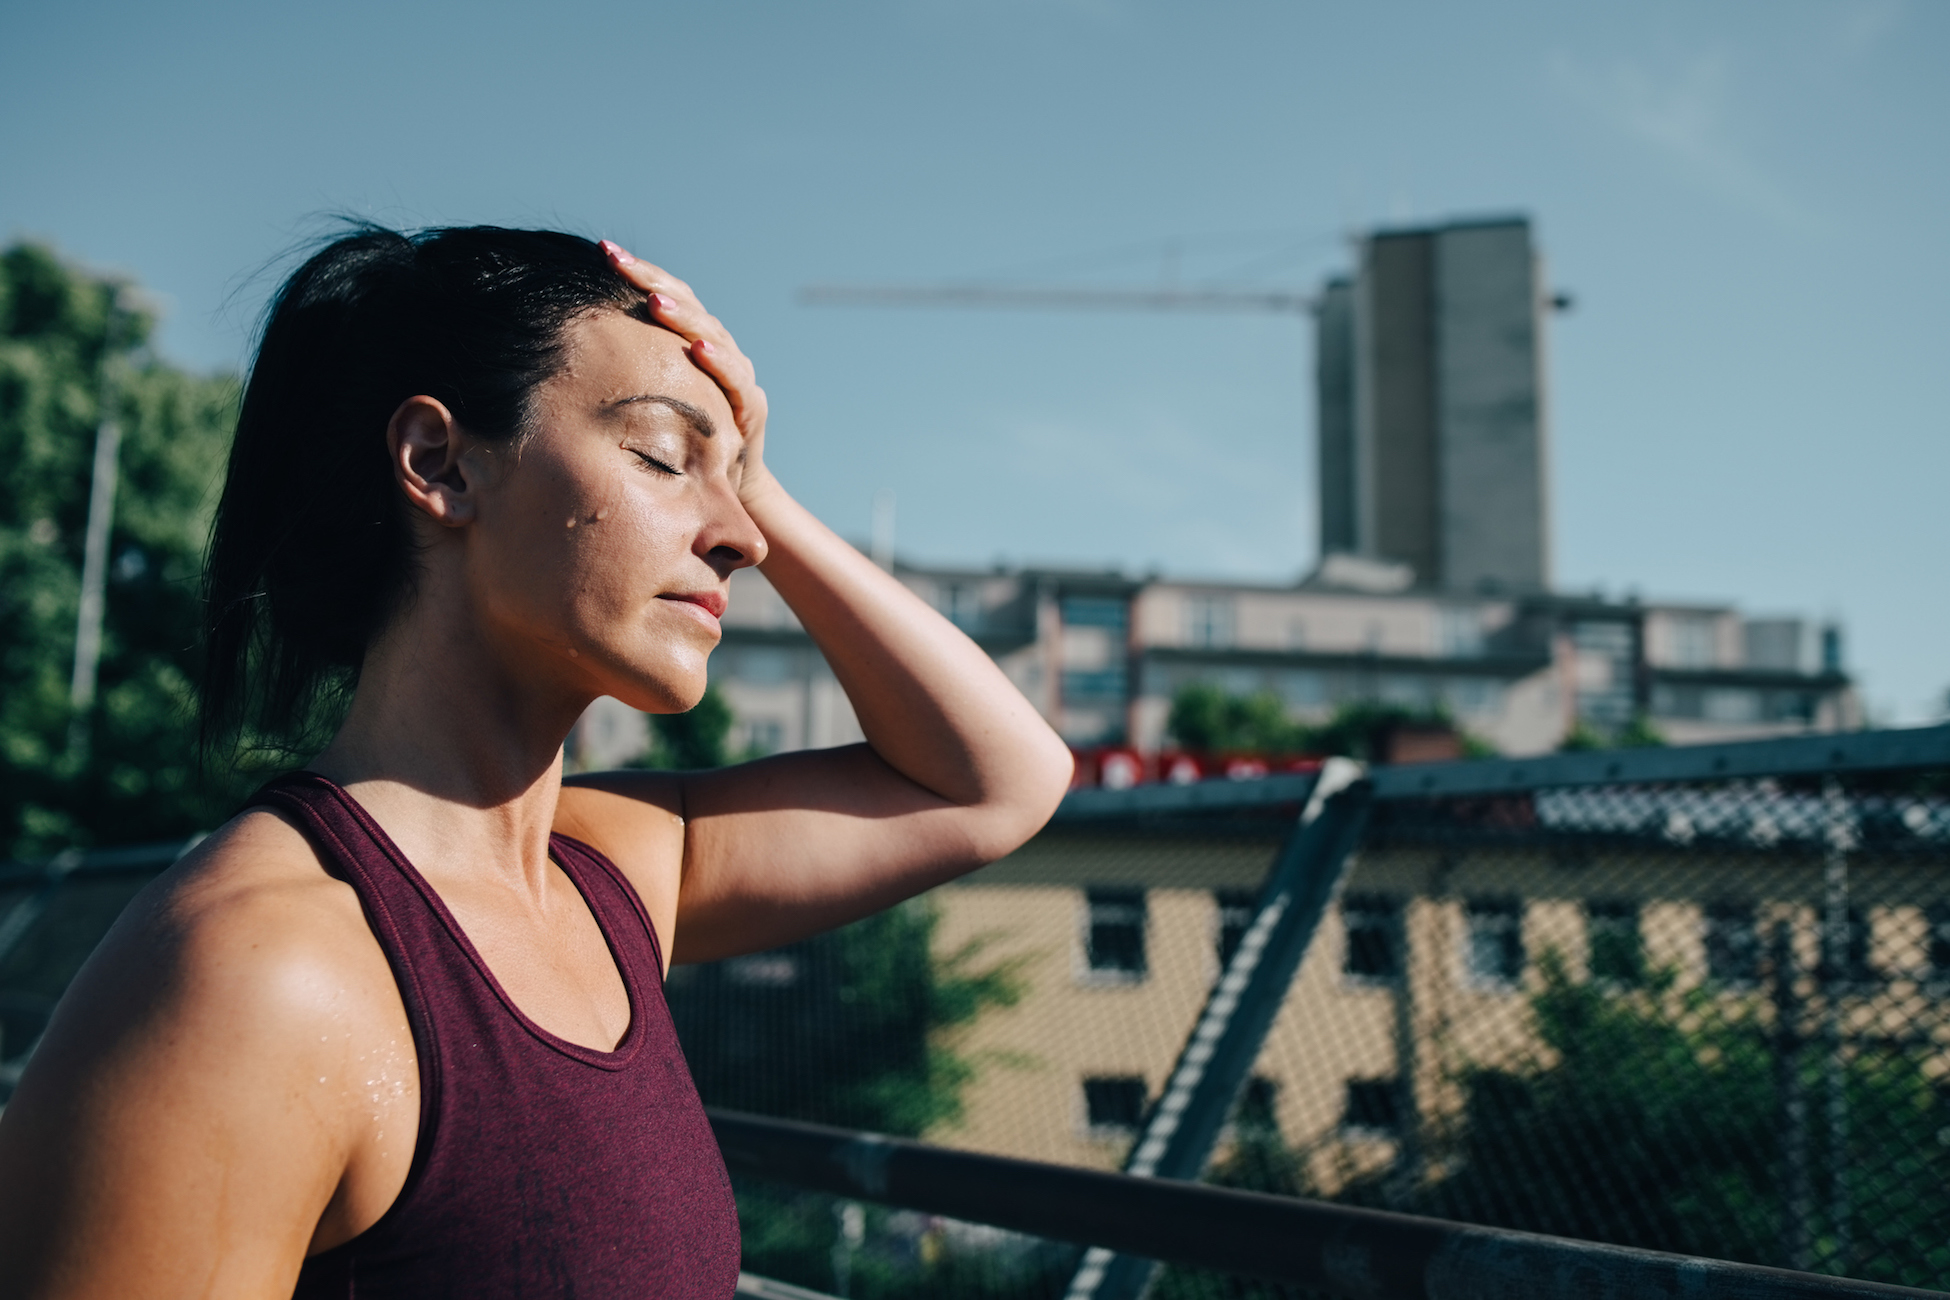 Exhausted sportswoman wiping sweat on forehead during sunny day